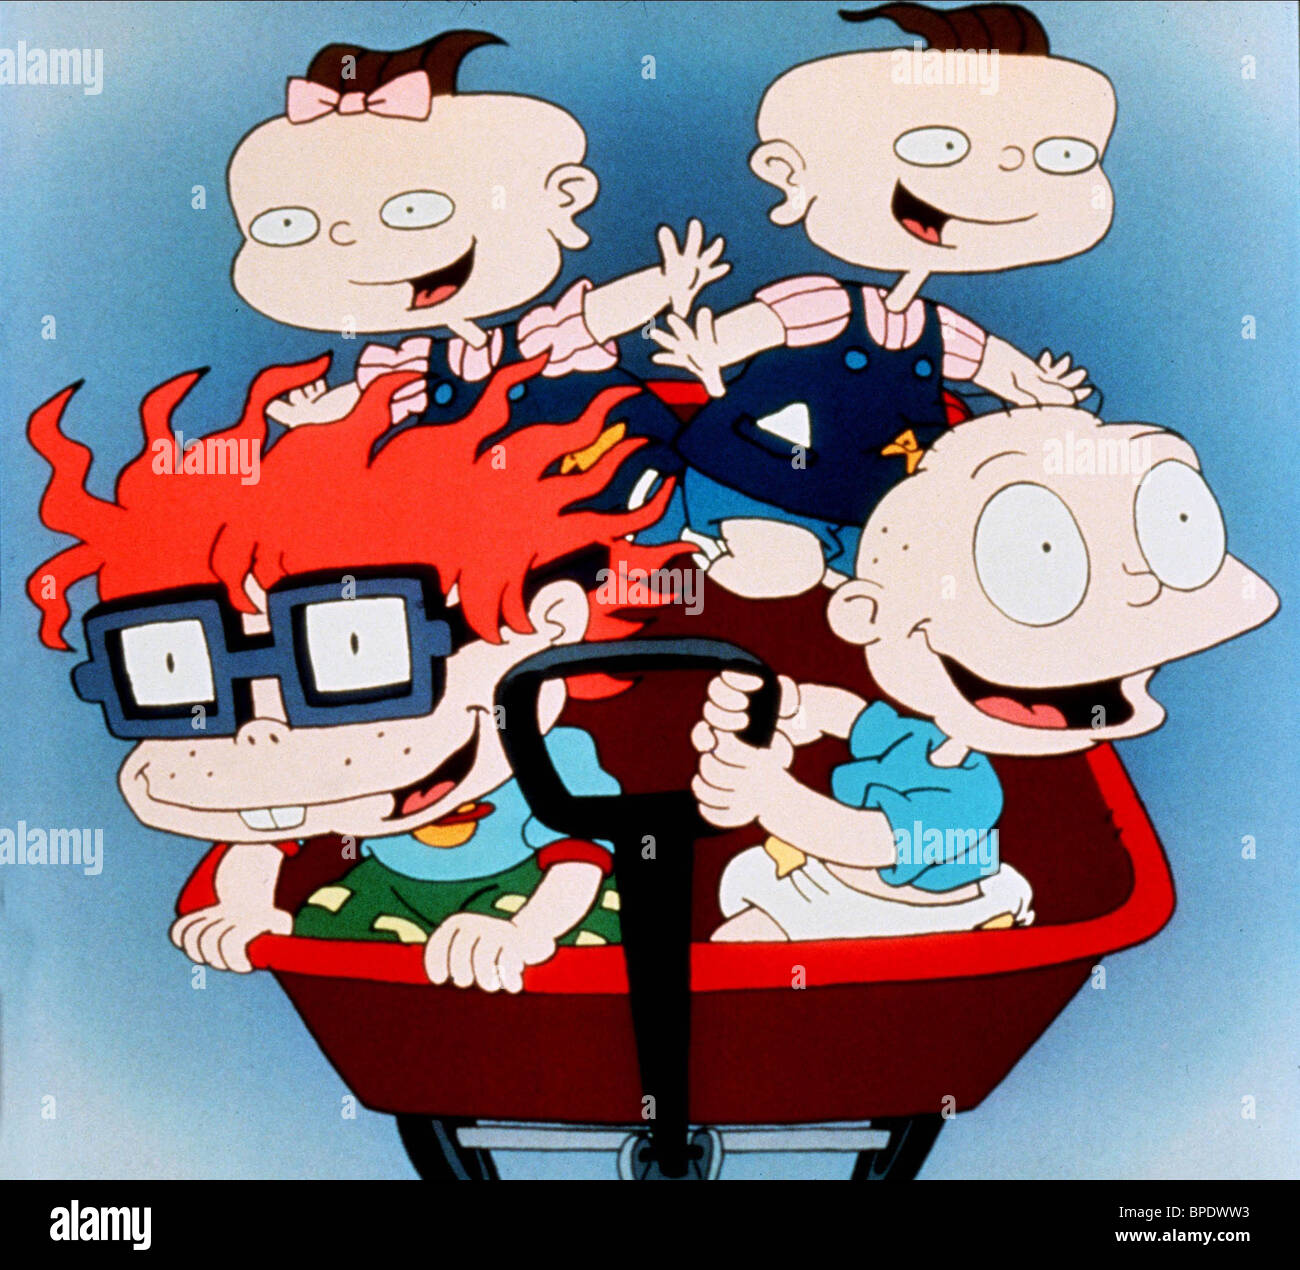 LIL PHIL CHUCKIE & TOMMY RUGRATS (1991 Stock Photo ...